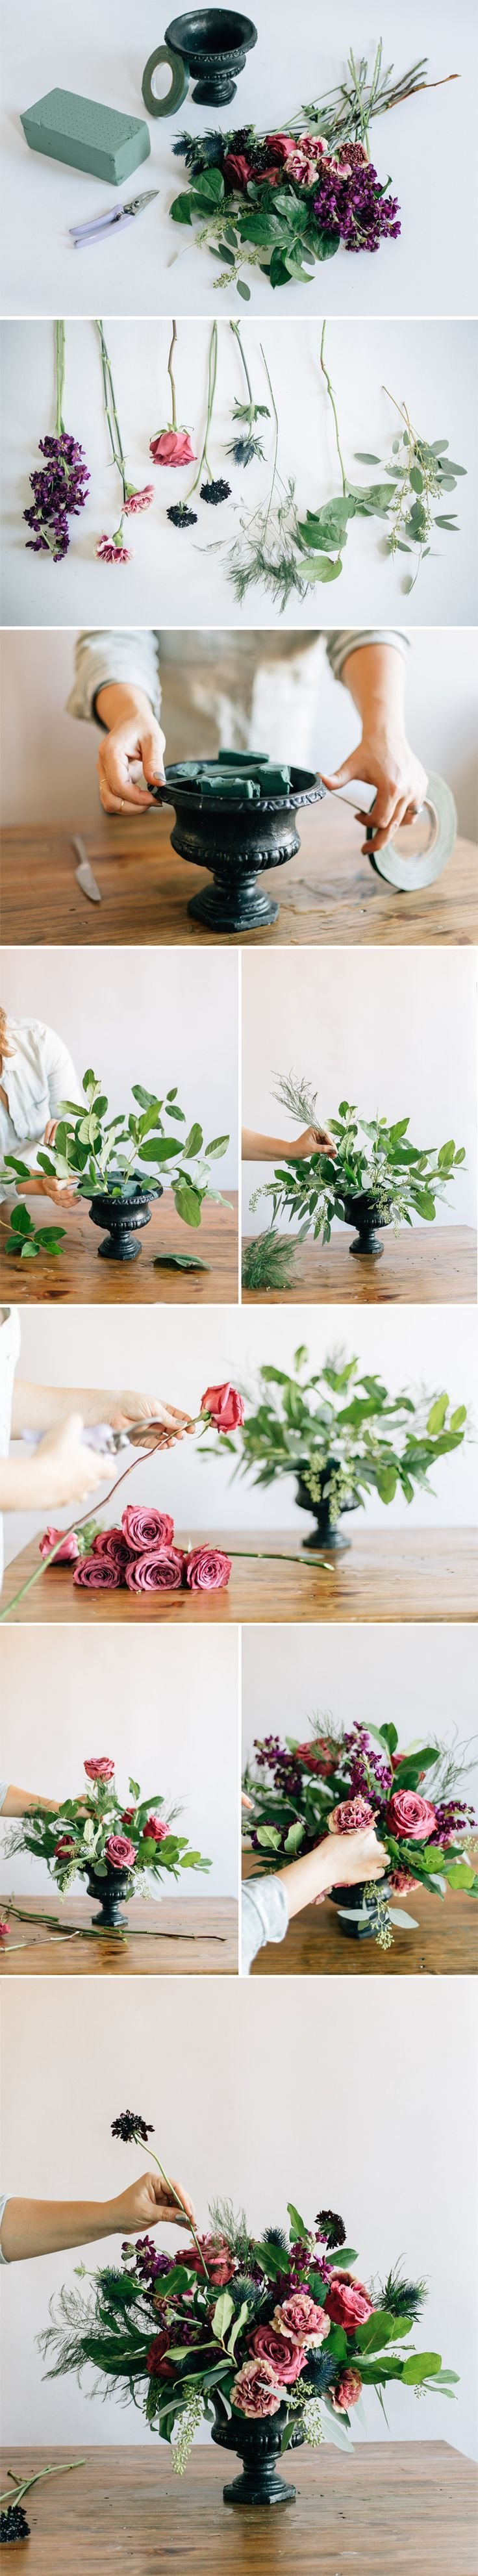 How to make your own DIY urn centerpiece that's not only chic and lush, but won't completely blow your flower budget. Click for full tutorial!